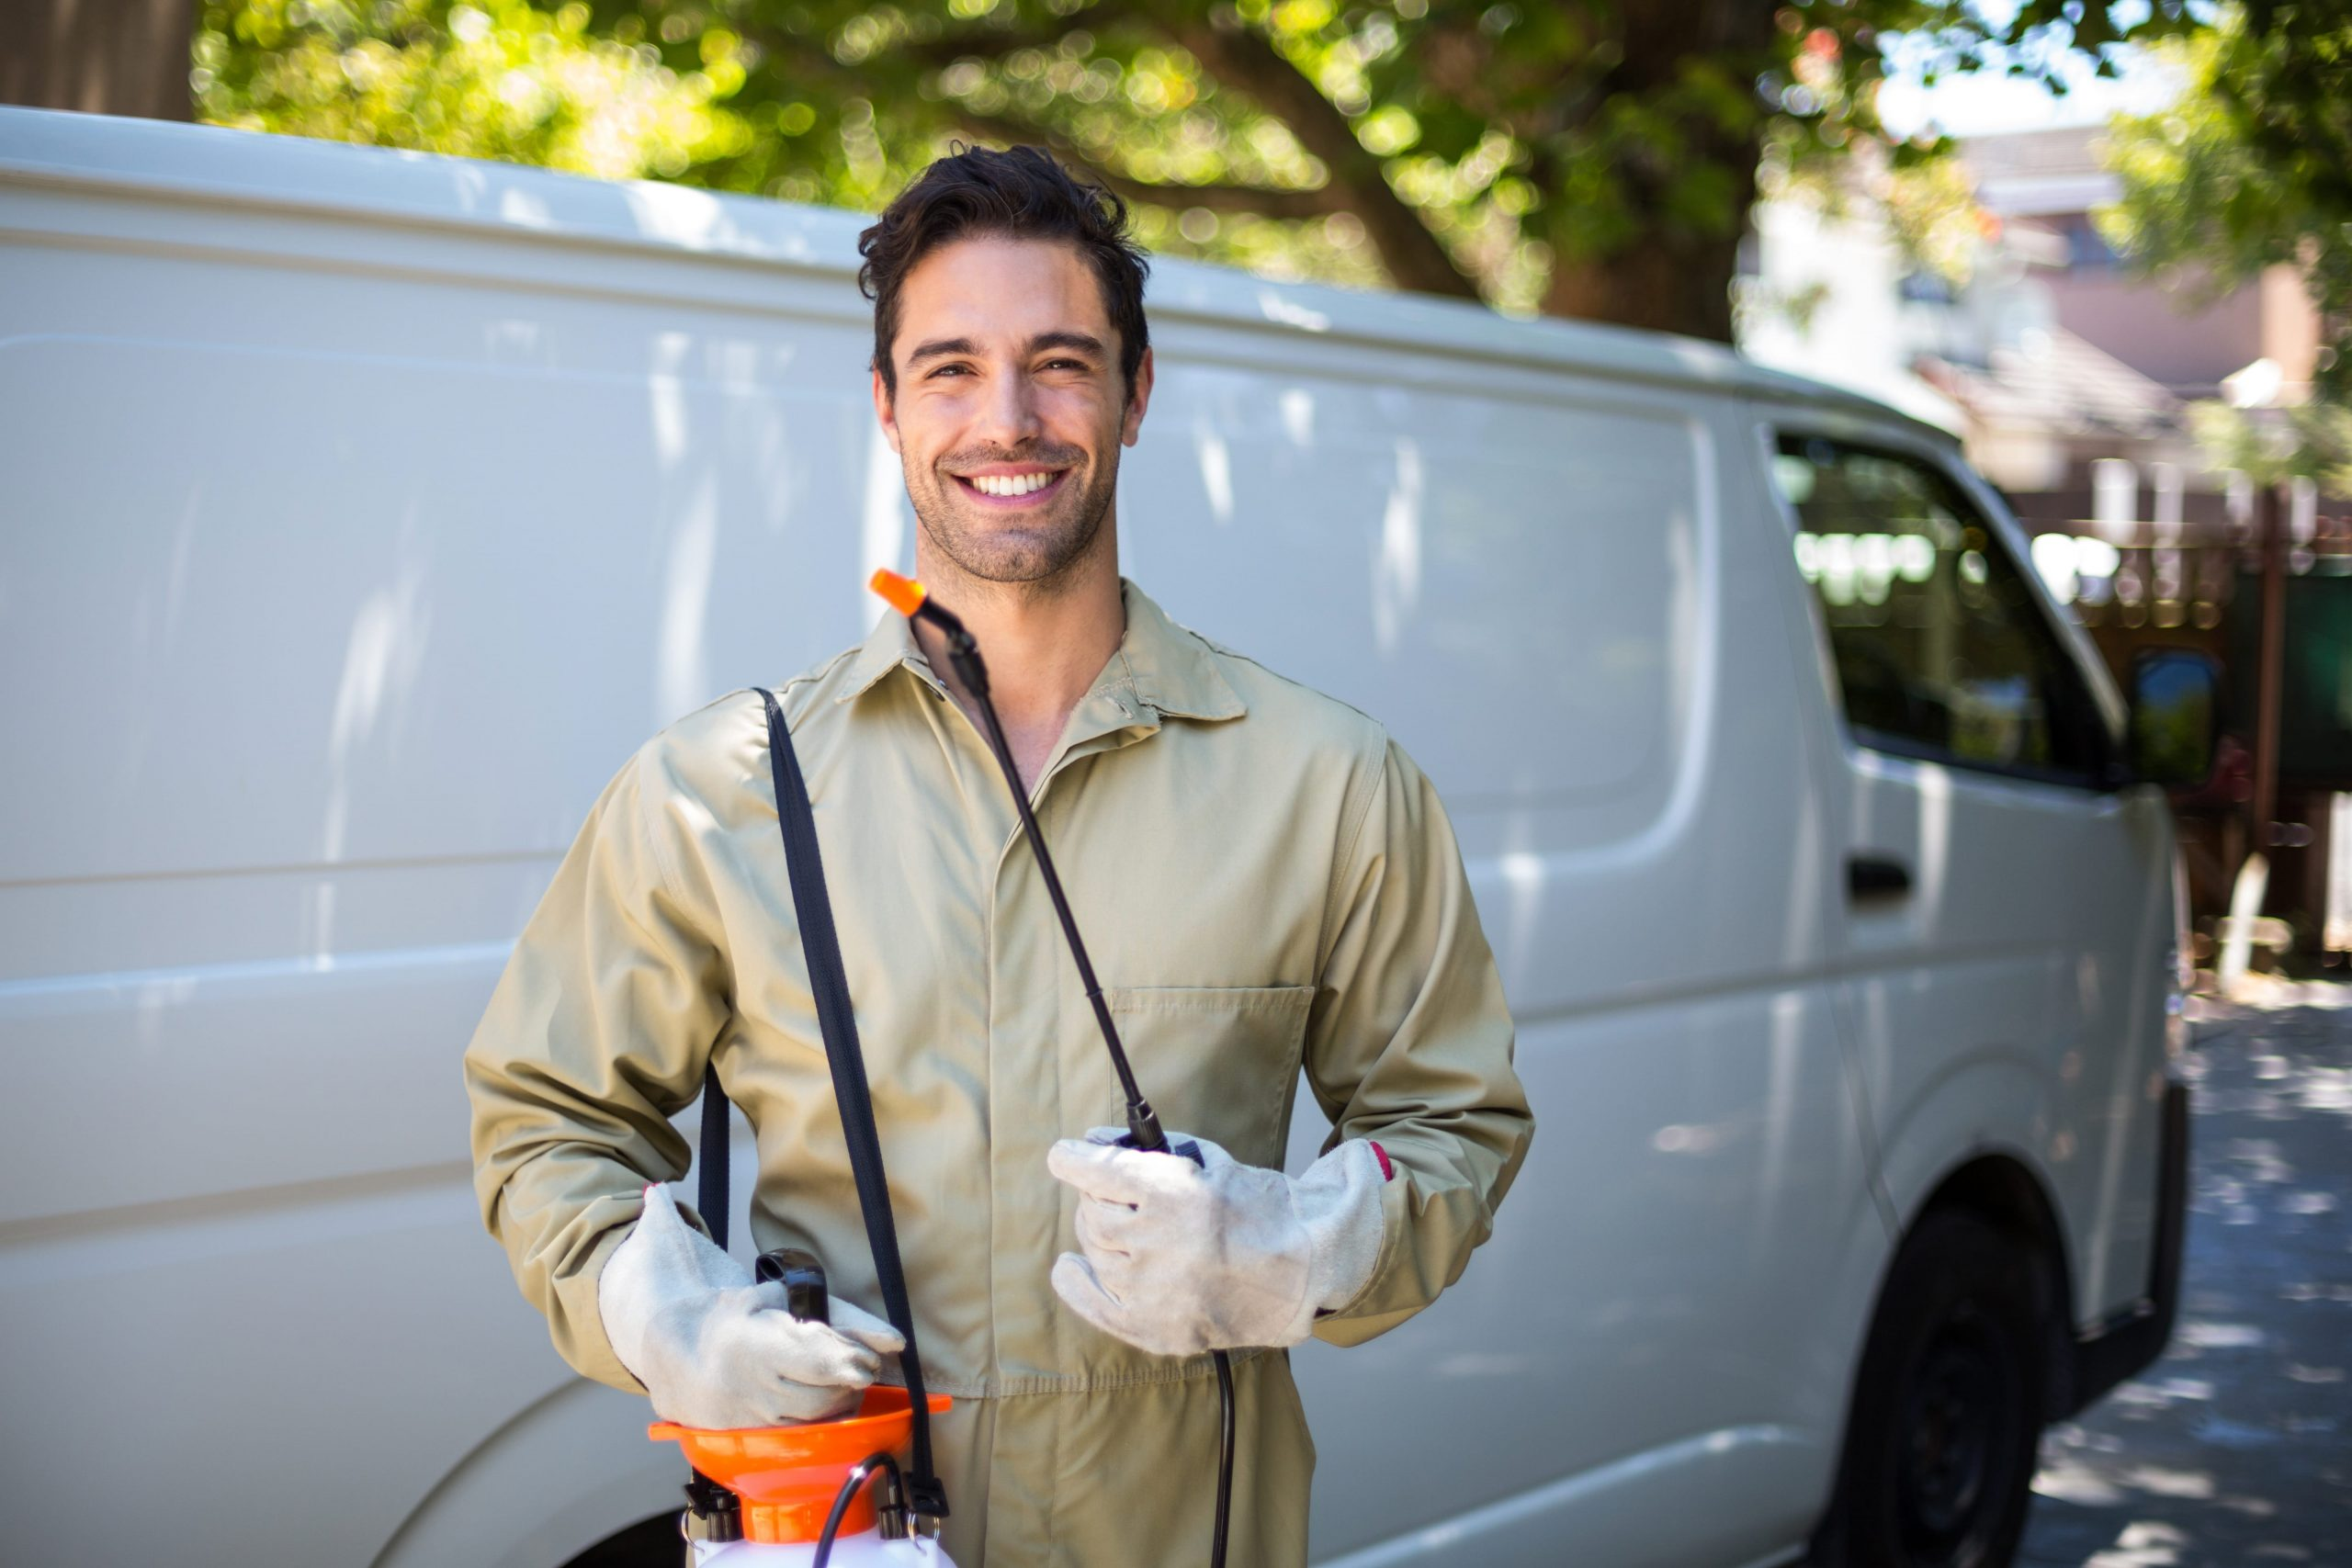 What You Need to Know When Applying for Pest Control Jobs